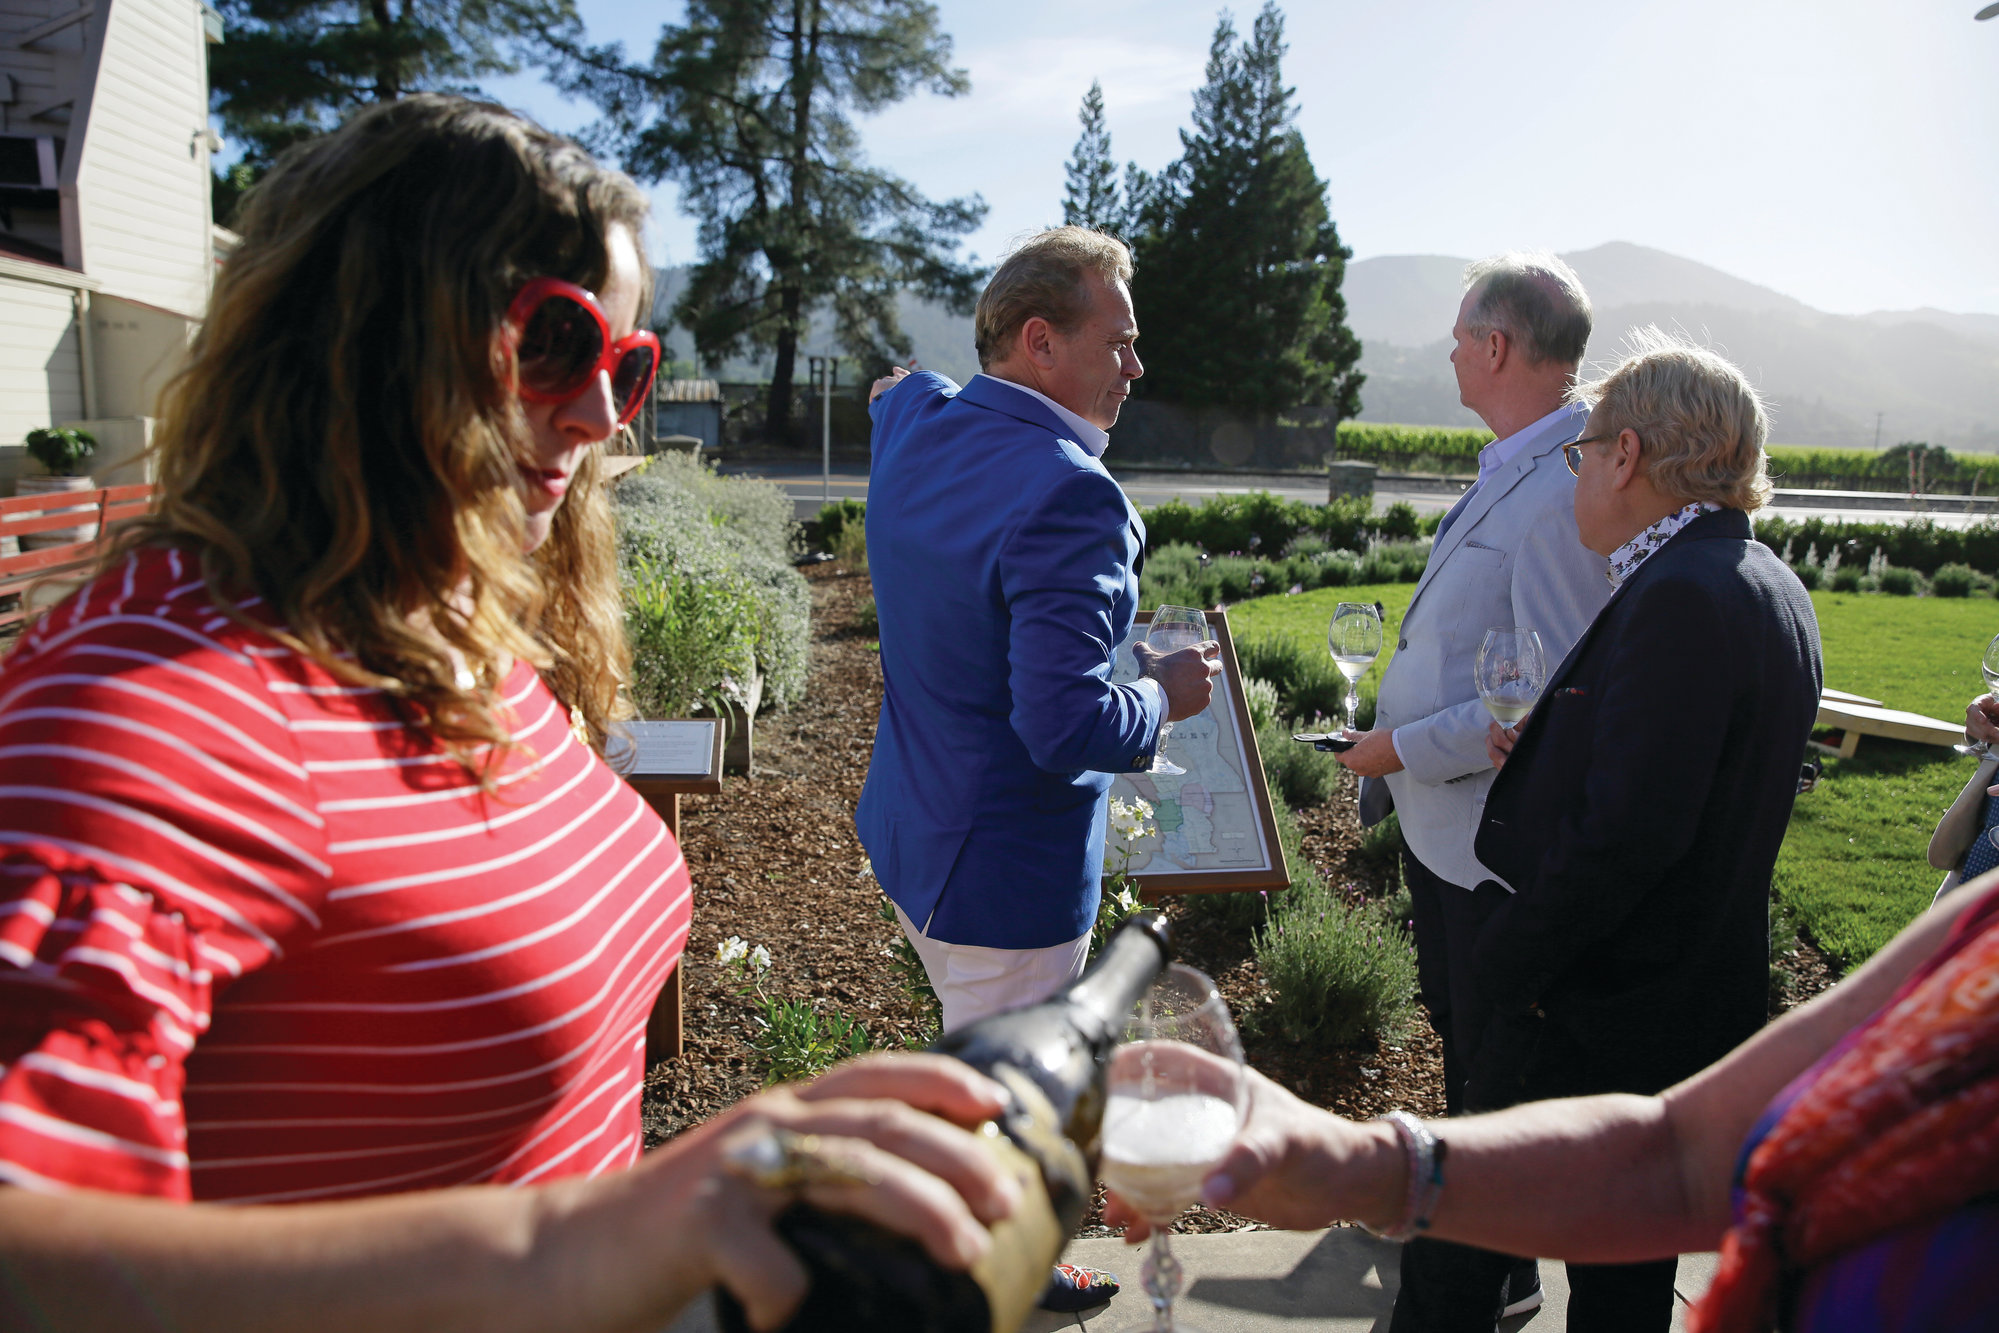 Photos by The Associated Press  Jean-Charles Boisset, center, leads guests on a tour of the grounds at 1881 Napa in Oakville, California, on June 5. The wine history museum and tasting salon opened this month.